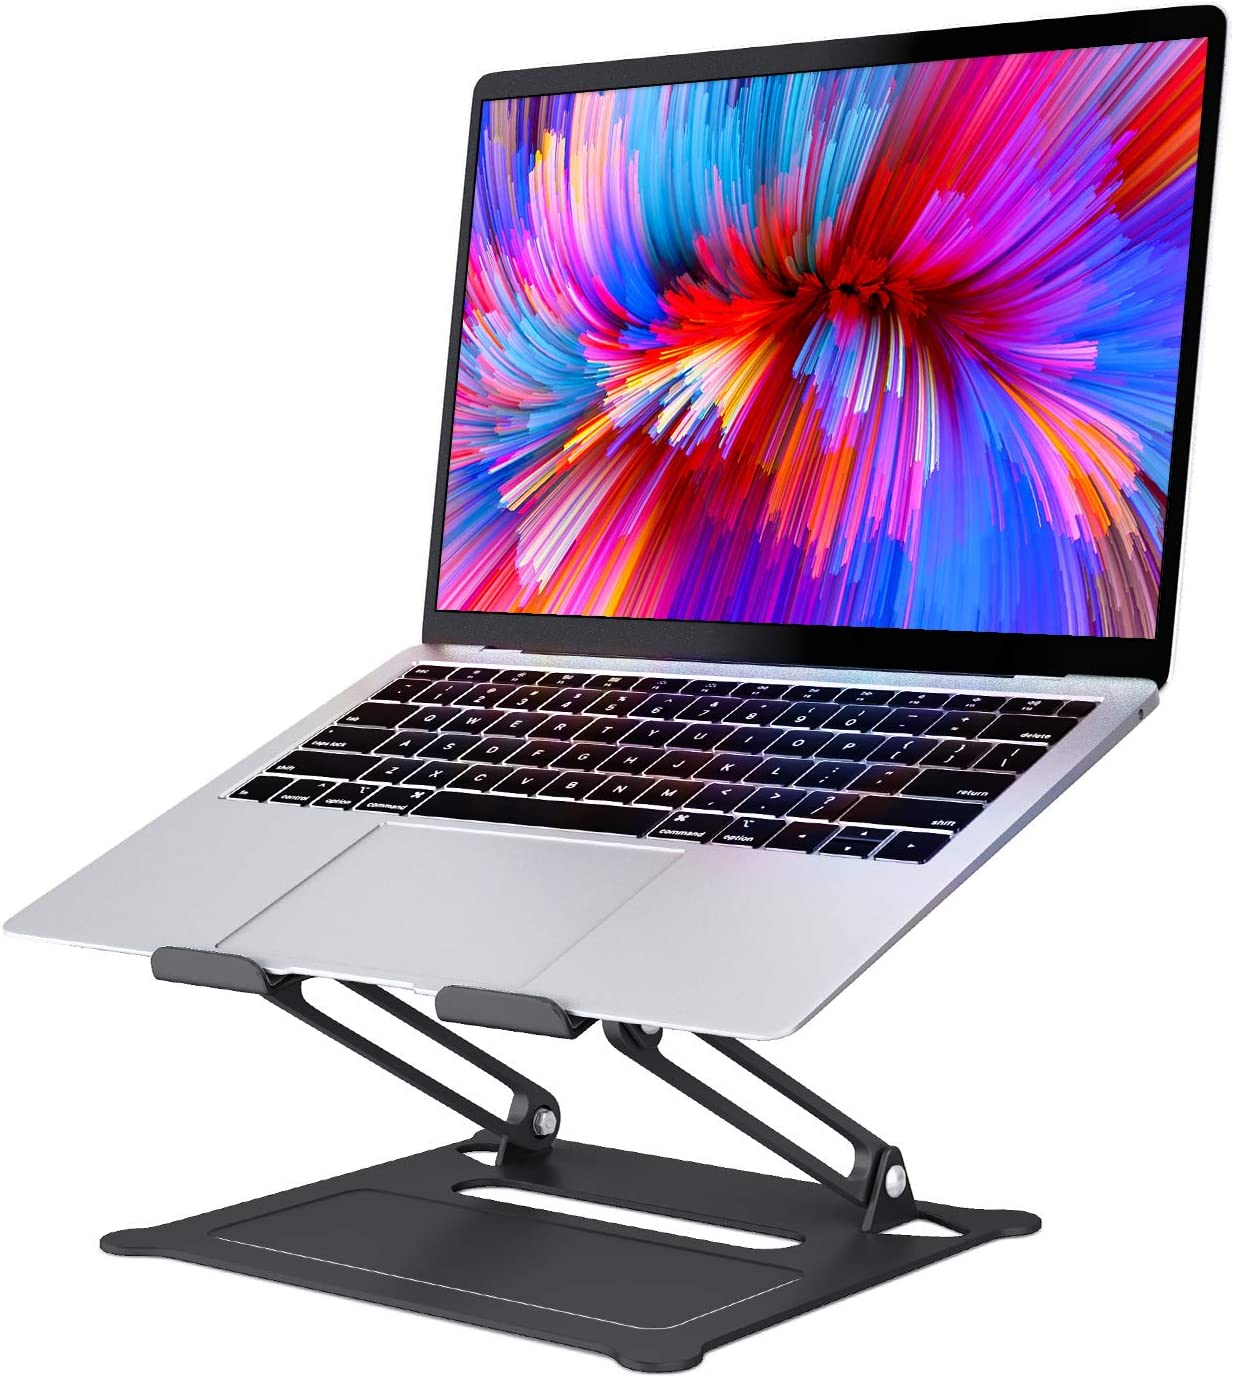 SAVFY Laptop Stand, Ergonomic Multi-Angle Height Adjustable Laptop Stand Holder, Aluminum Light Weight Adjustable Laptop Stand for 10''-17'' MacBook, iPad, Notebook, Tablet